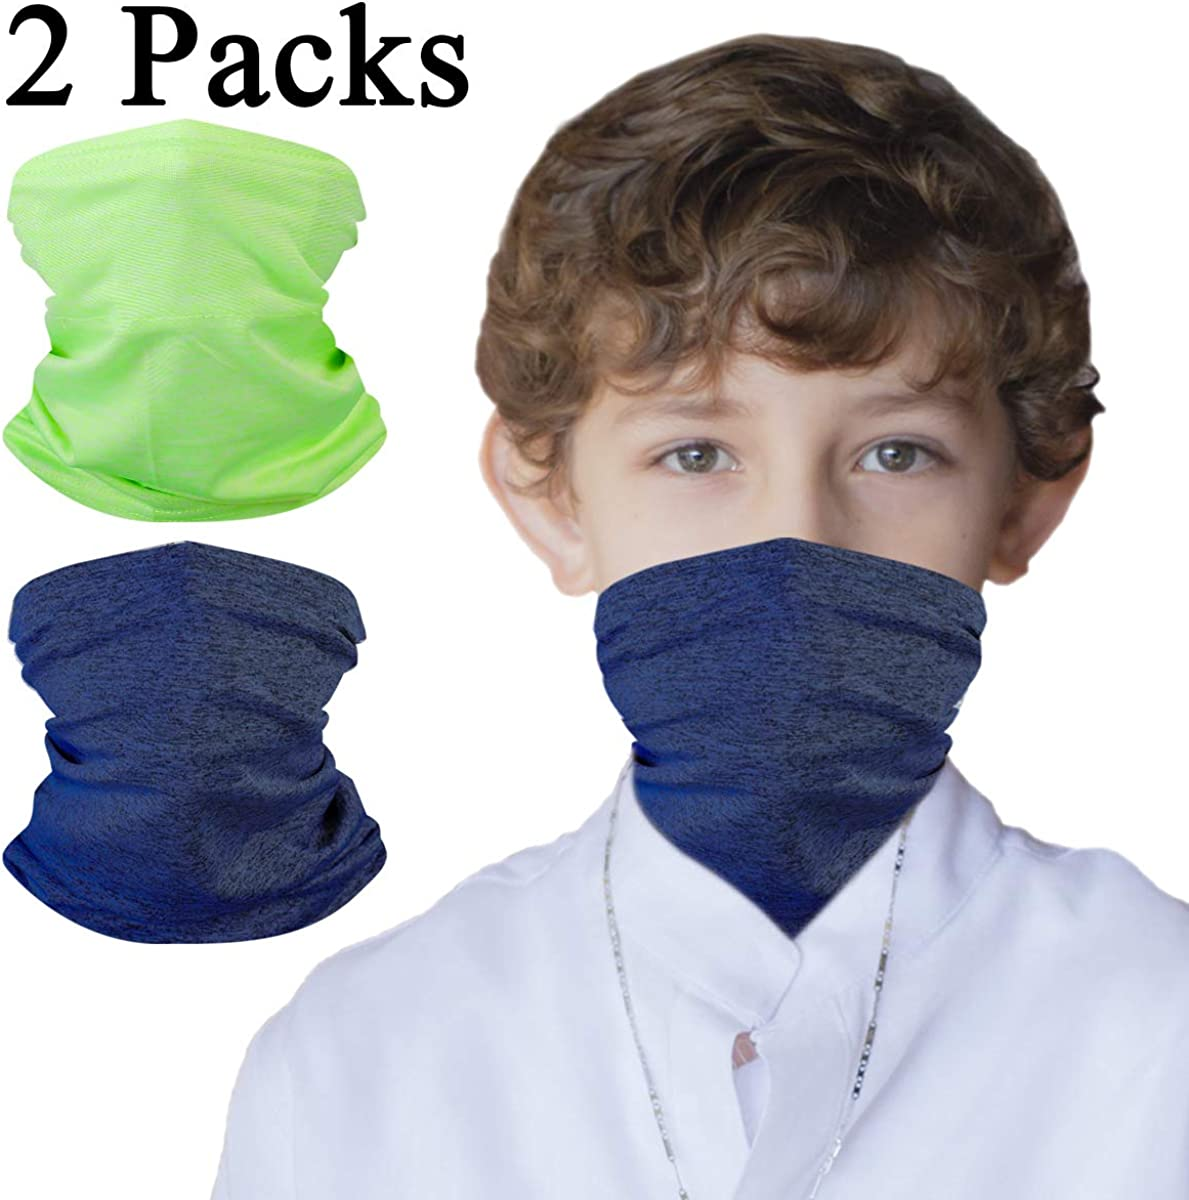 Neck Gaiter Bandana Girl Boy Safety Head Cover for Saliva and Anti-Dust Protection Toddler Headgear Infinity Scarf Kids Headwear Magical Multi Function,Half Face Protective Balaclava